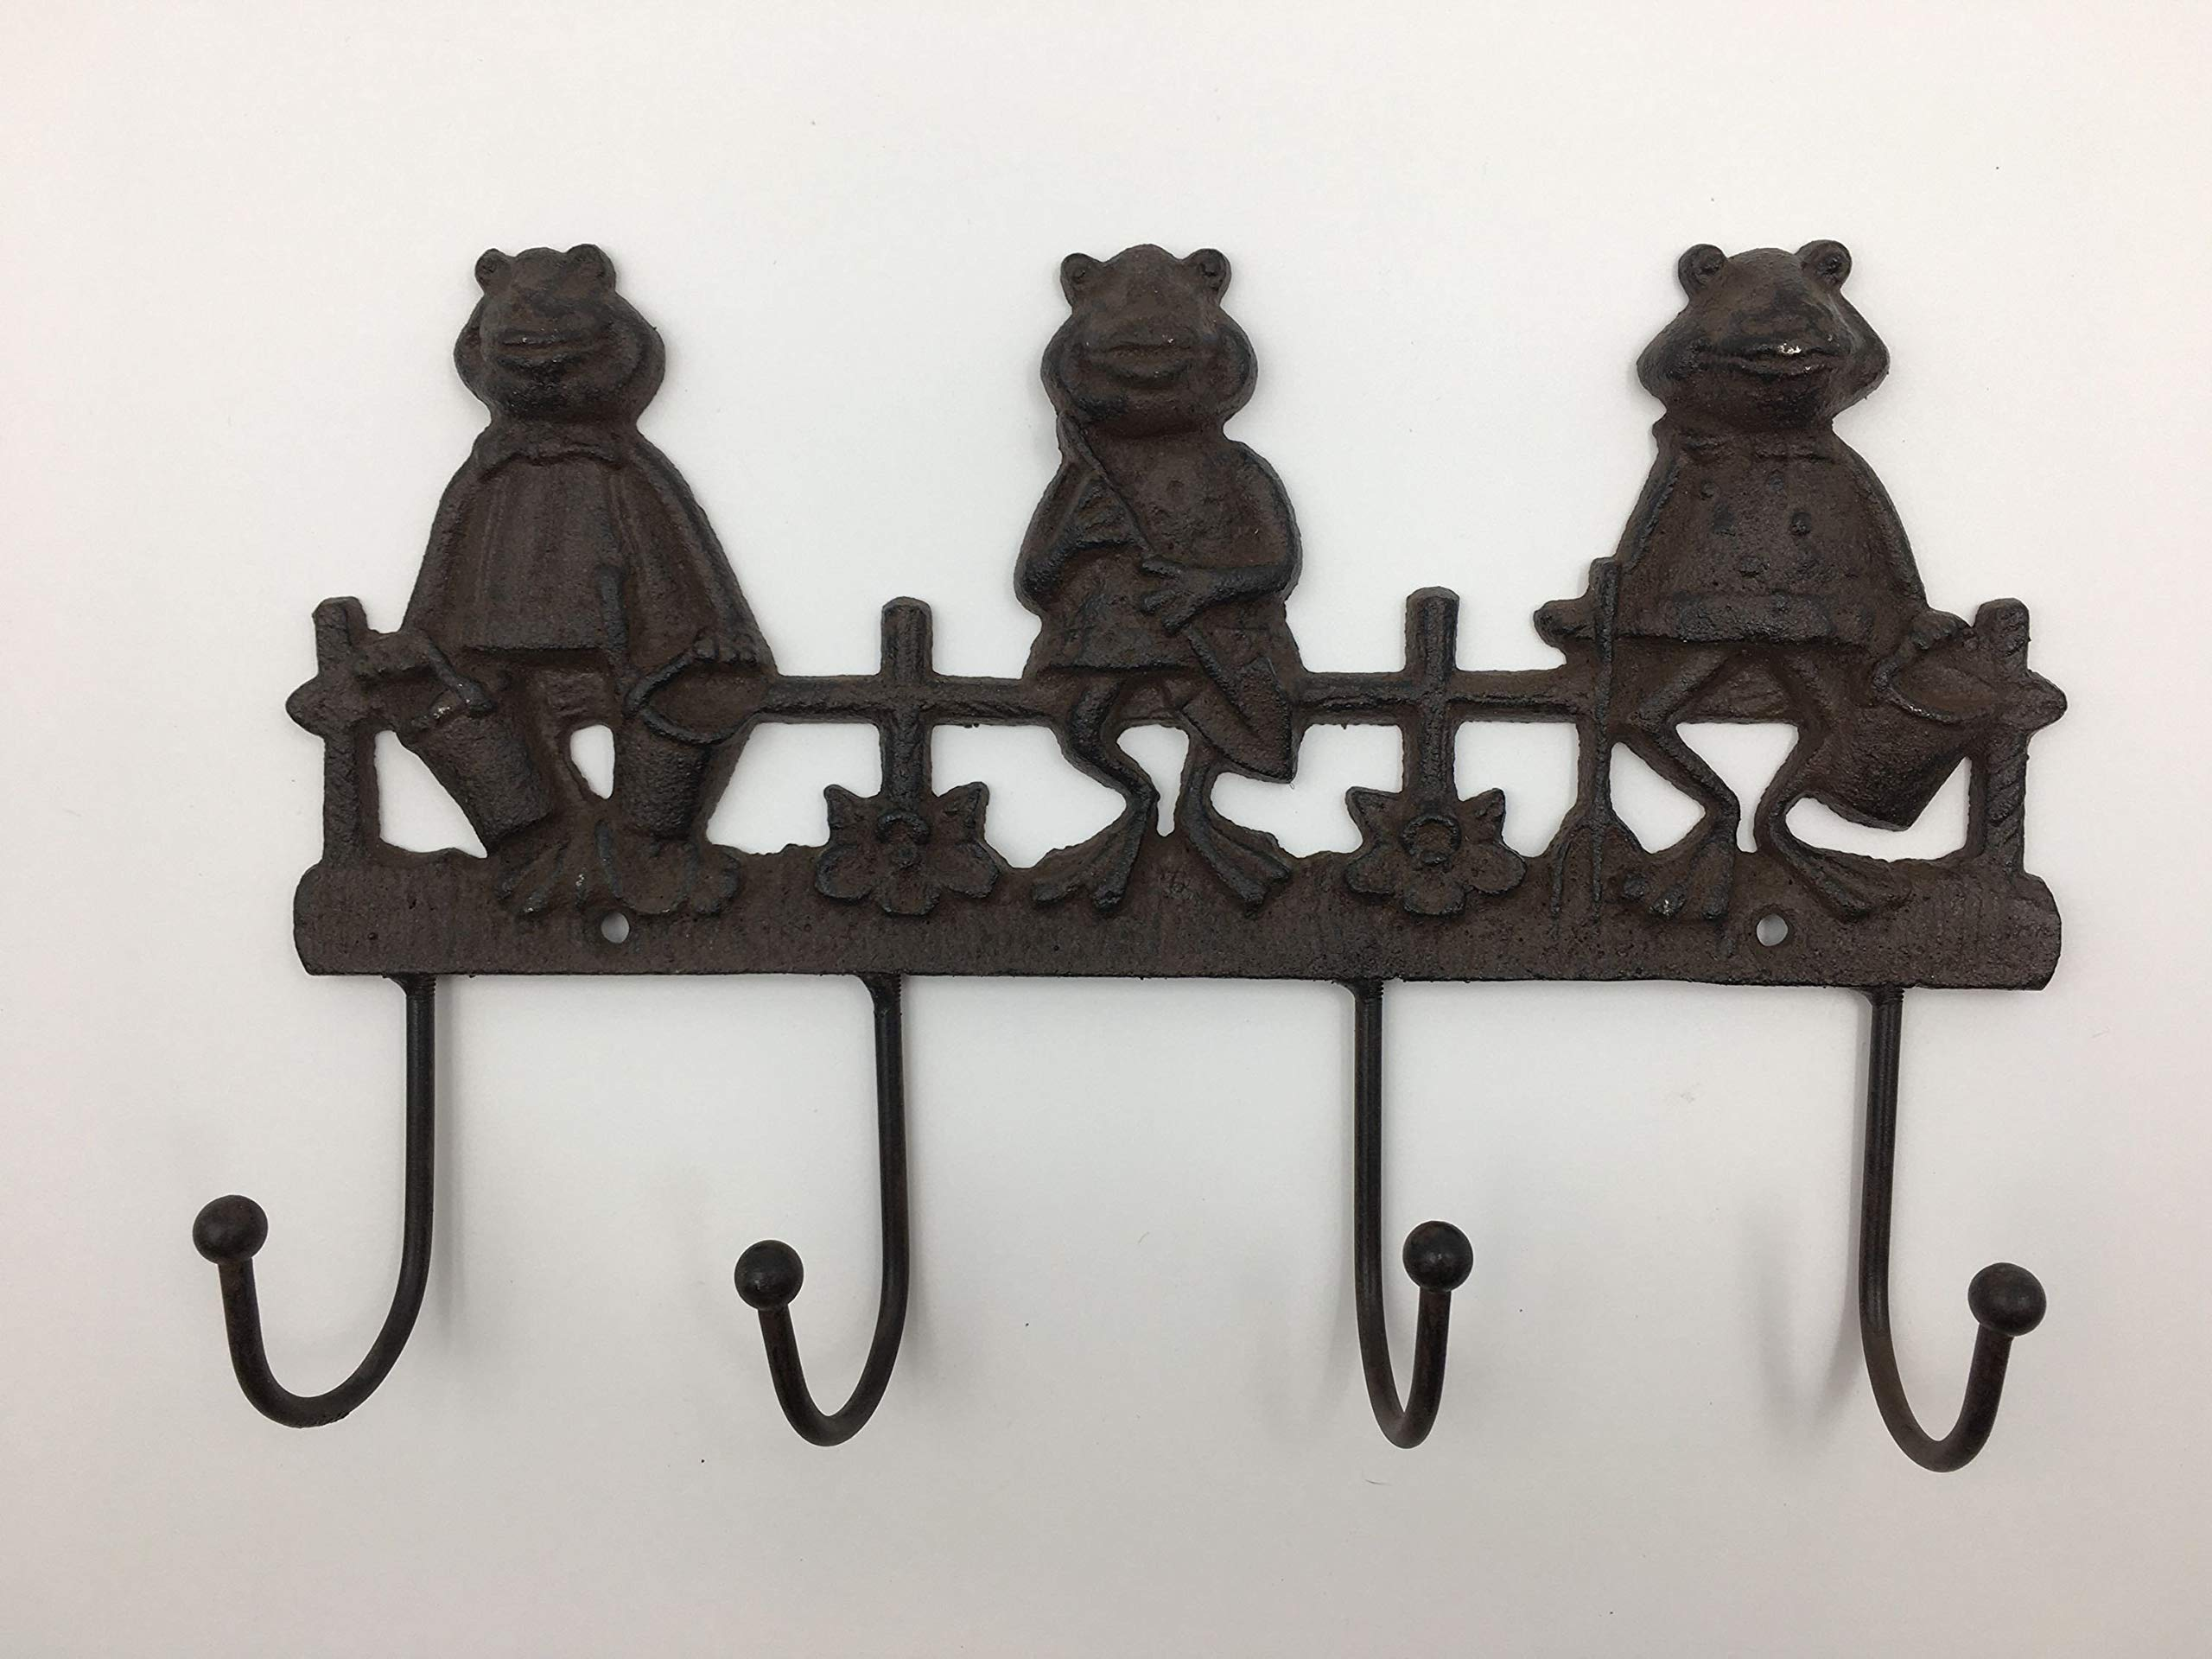 Jcook Home Decor Frog Cast Iron Hook (4-Hook)